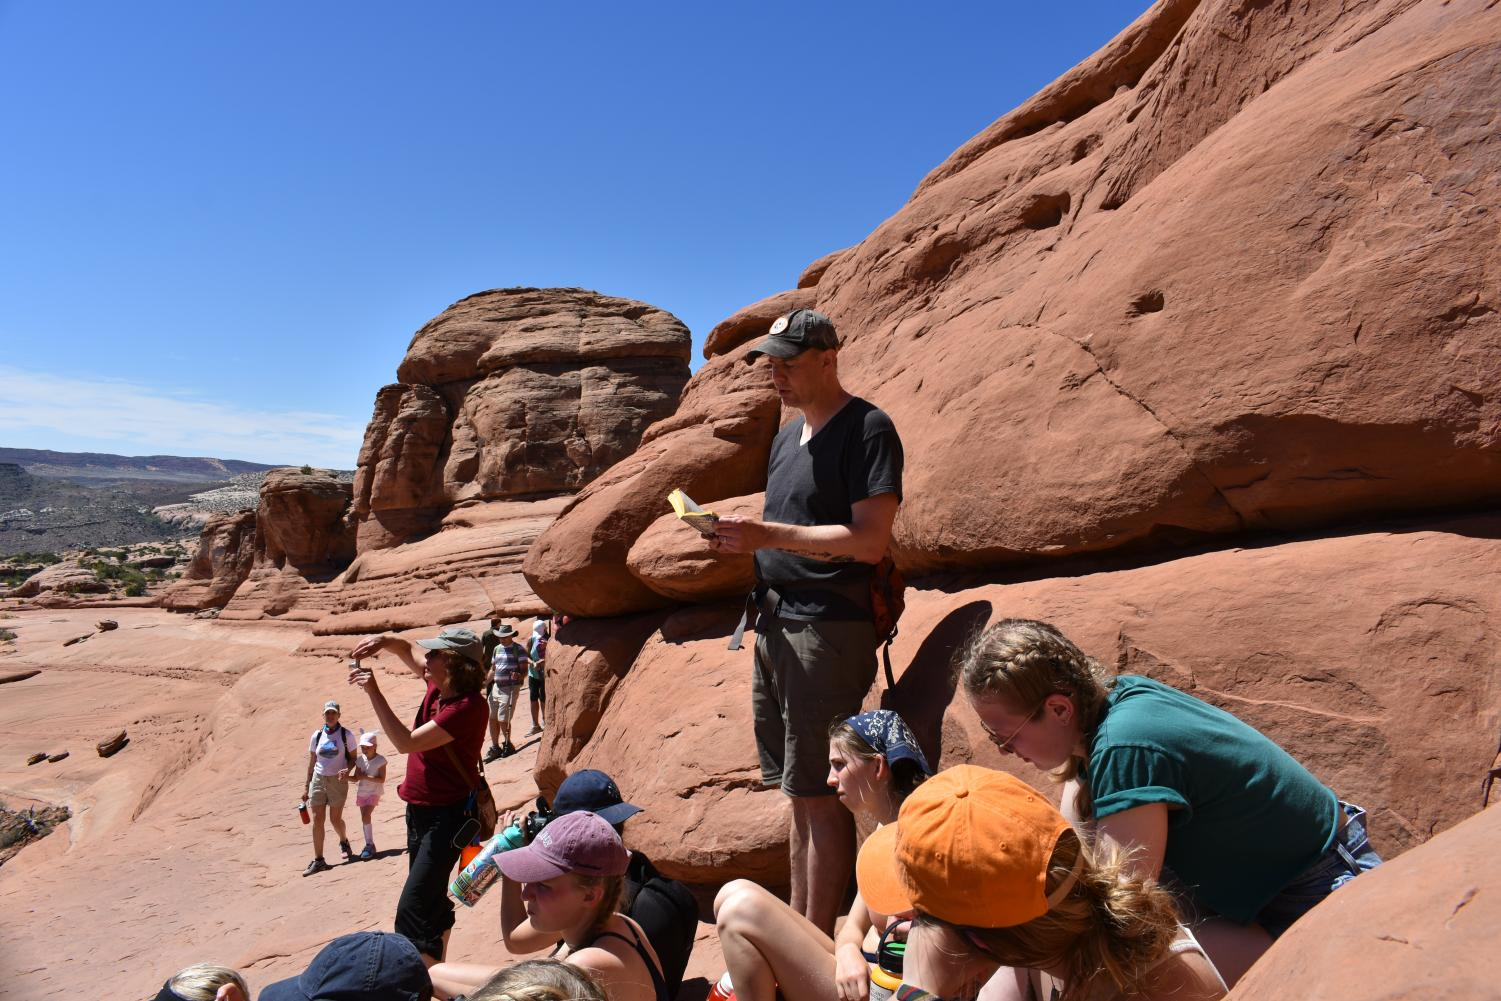 Students+sat+in+silence+as+Mr.+Dreisbach+read+aloud+a+passage+about+the+beauty+of+Arches+National+Park+and+the+Colorado+Plateau.+